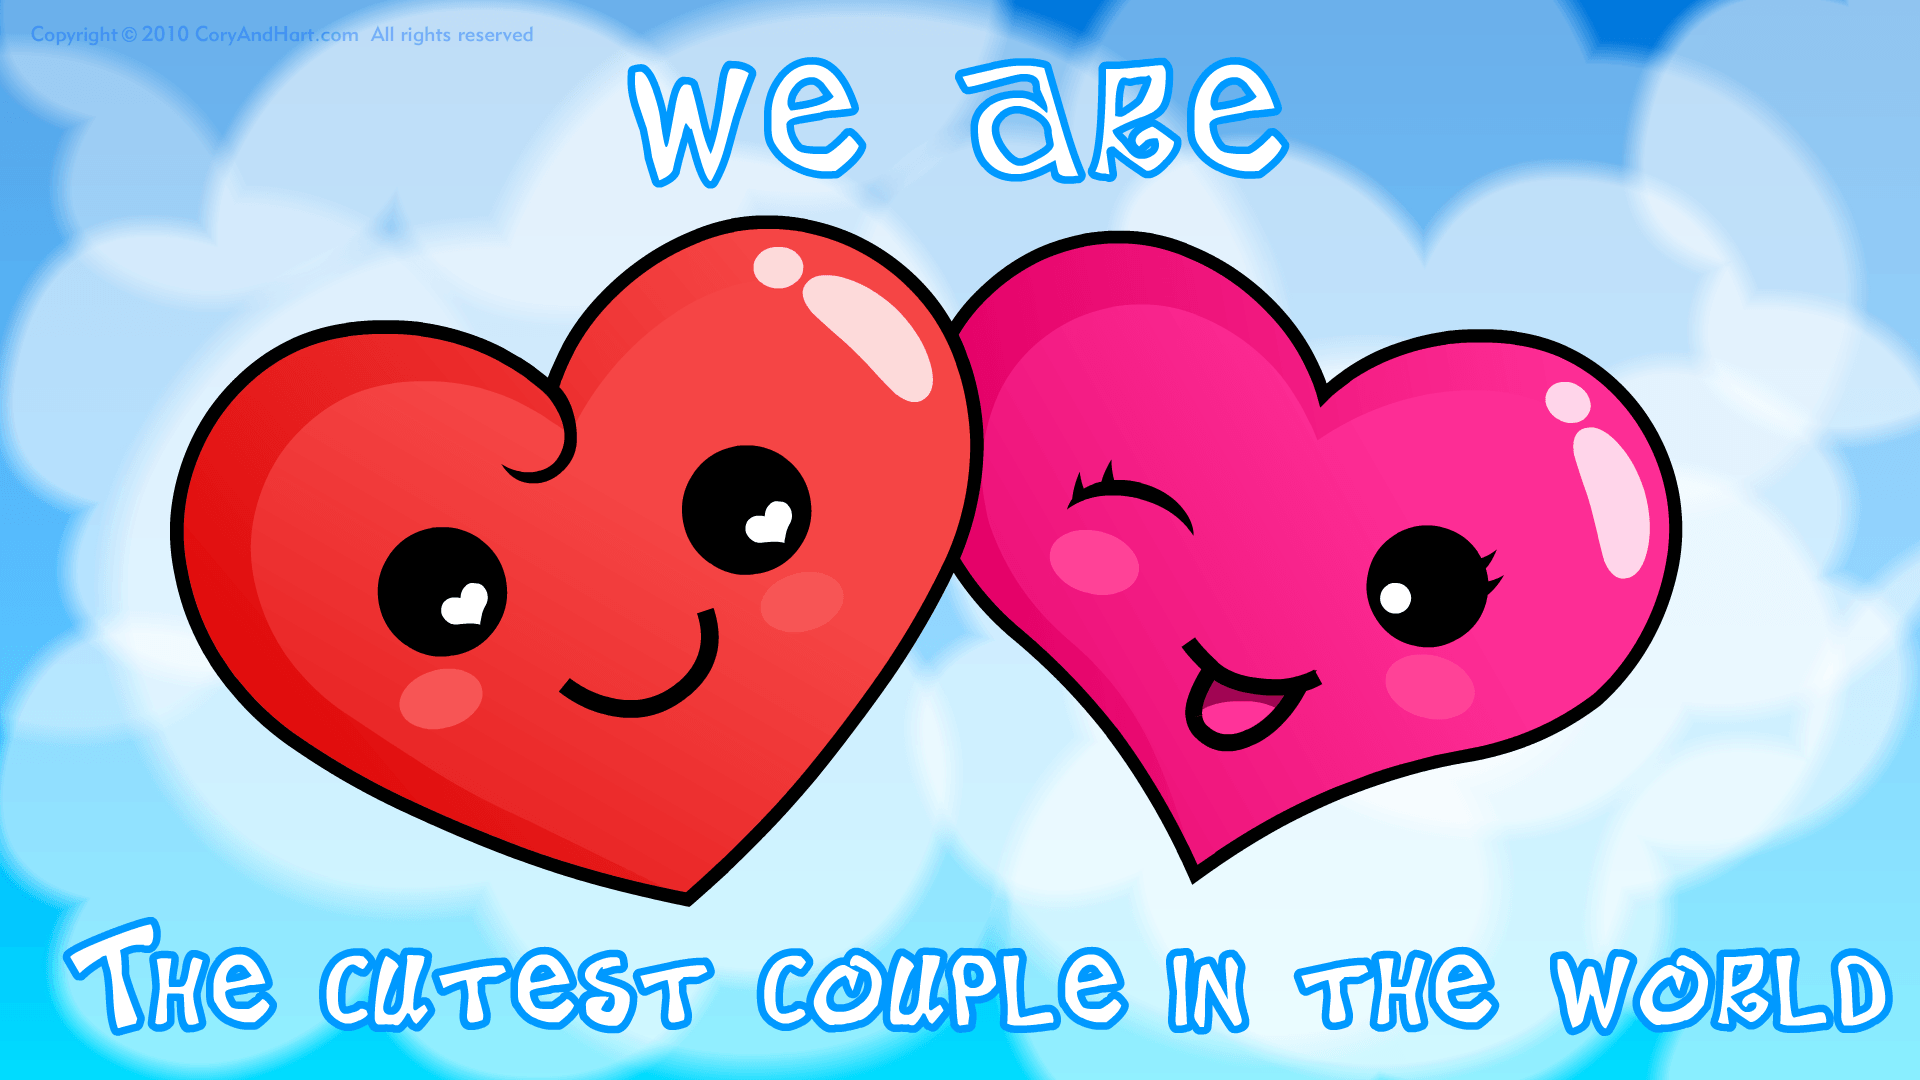 Love cute Heart Wallpaper : Free Love Wallpapers Gallery - Wallpaper cave